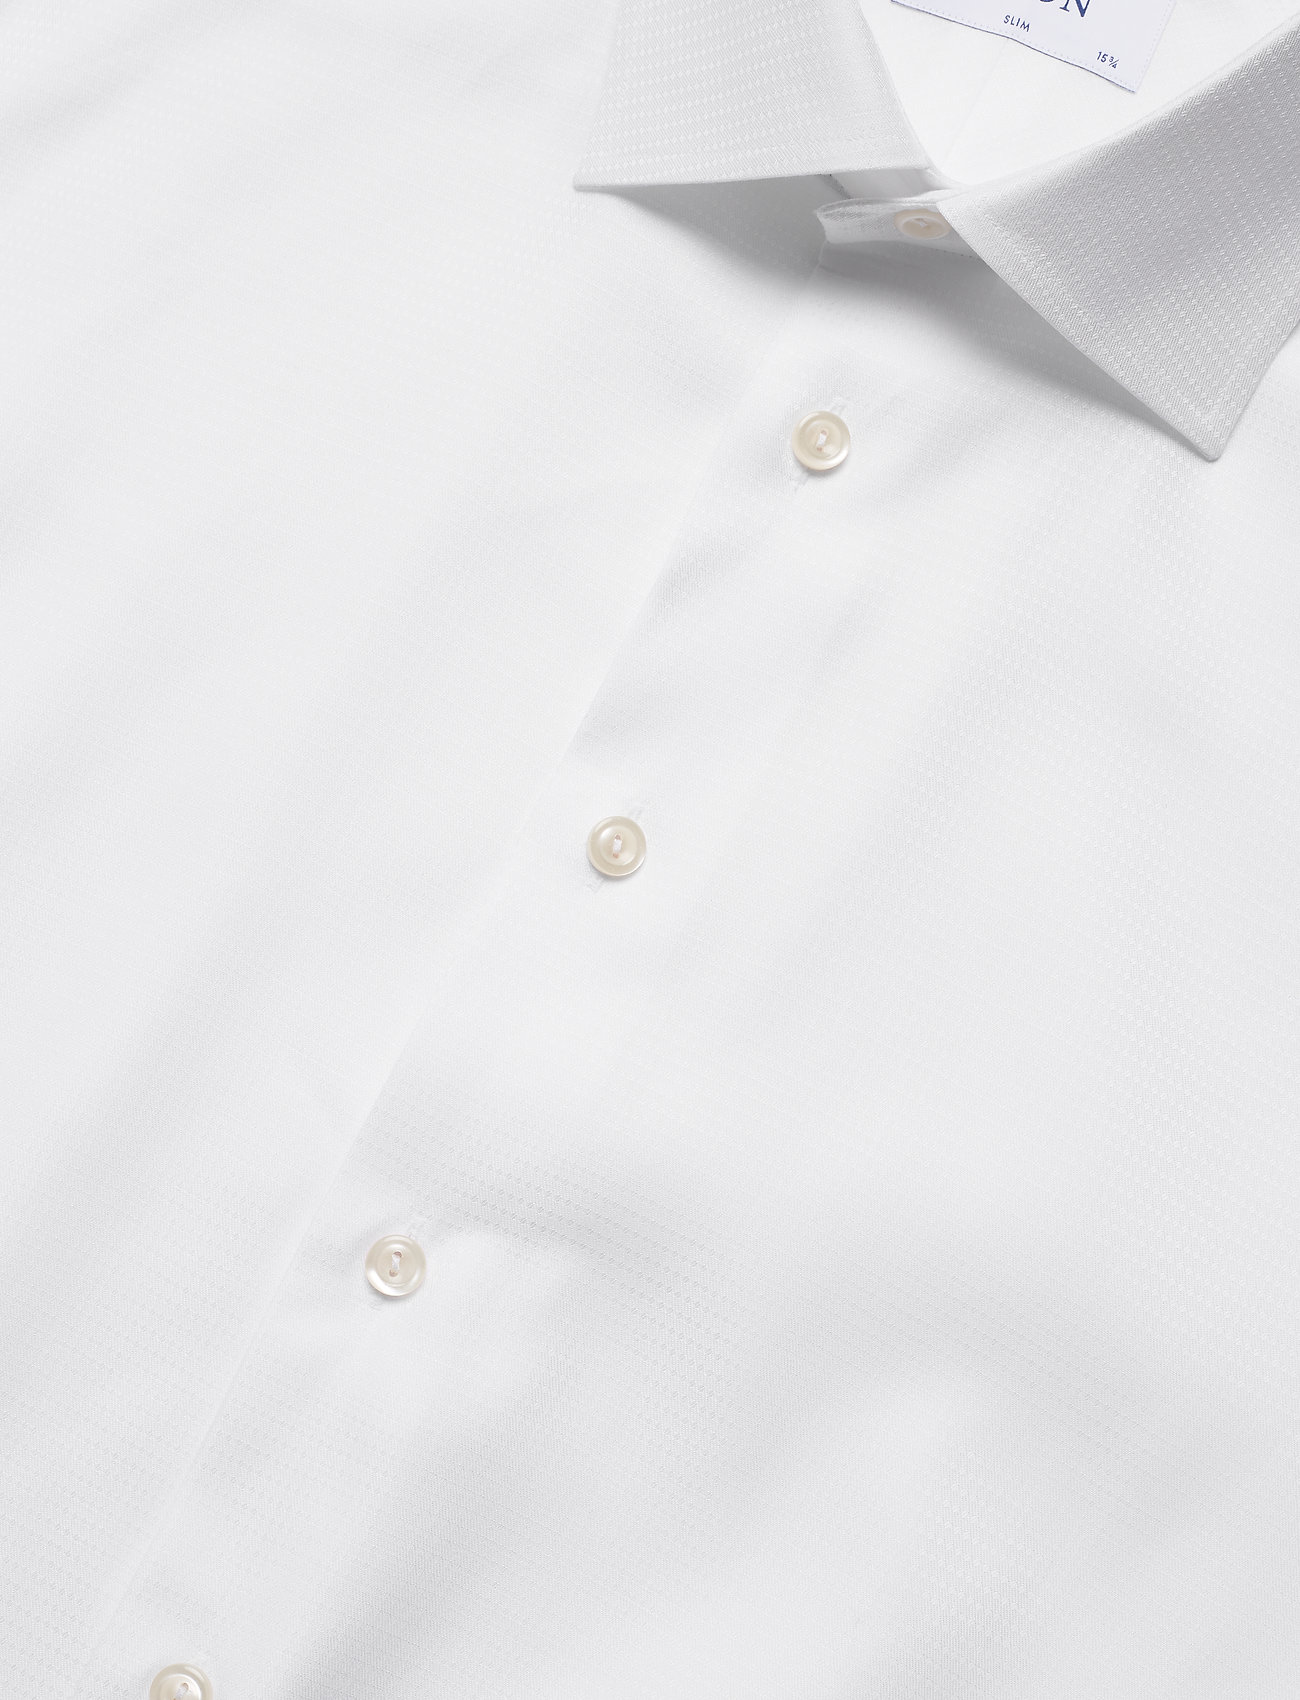 Eton Micro weave twill shirt - french cuffs - Skjorter WHITE - Menn Klær